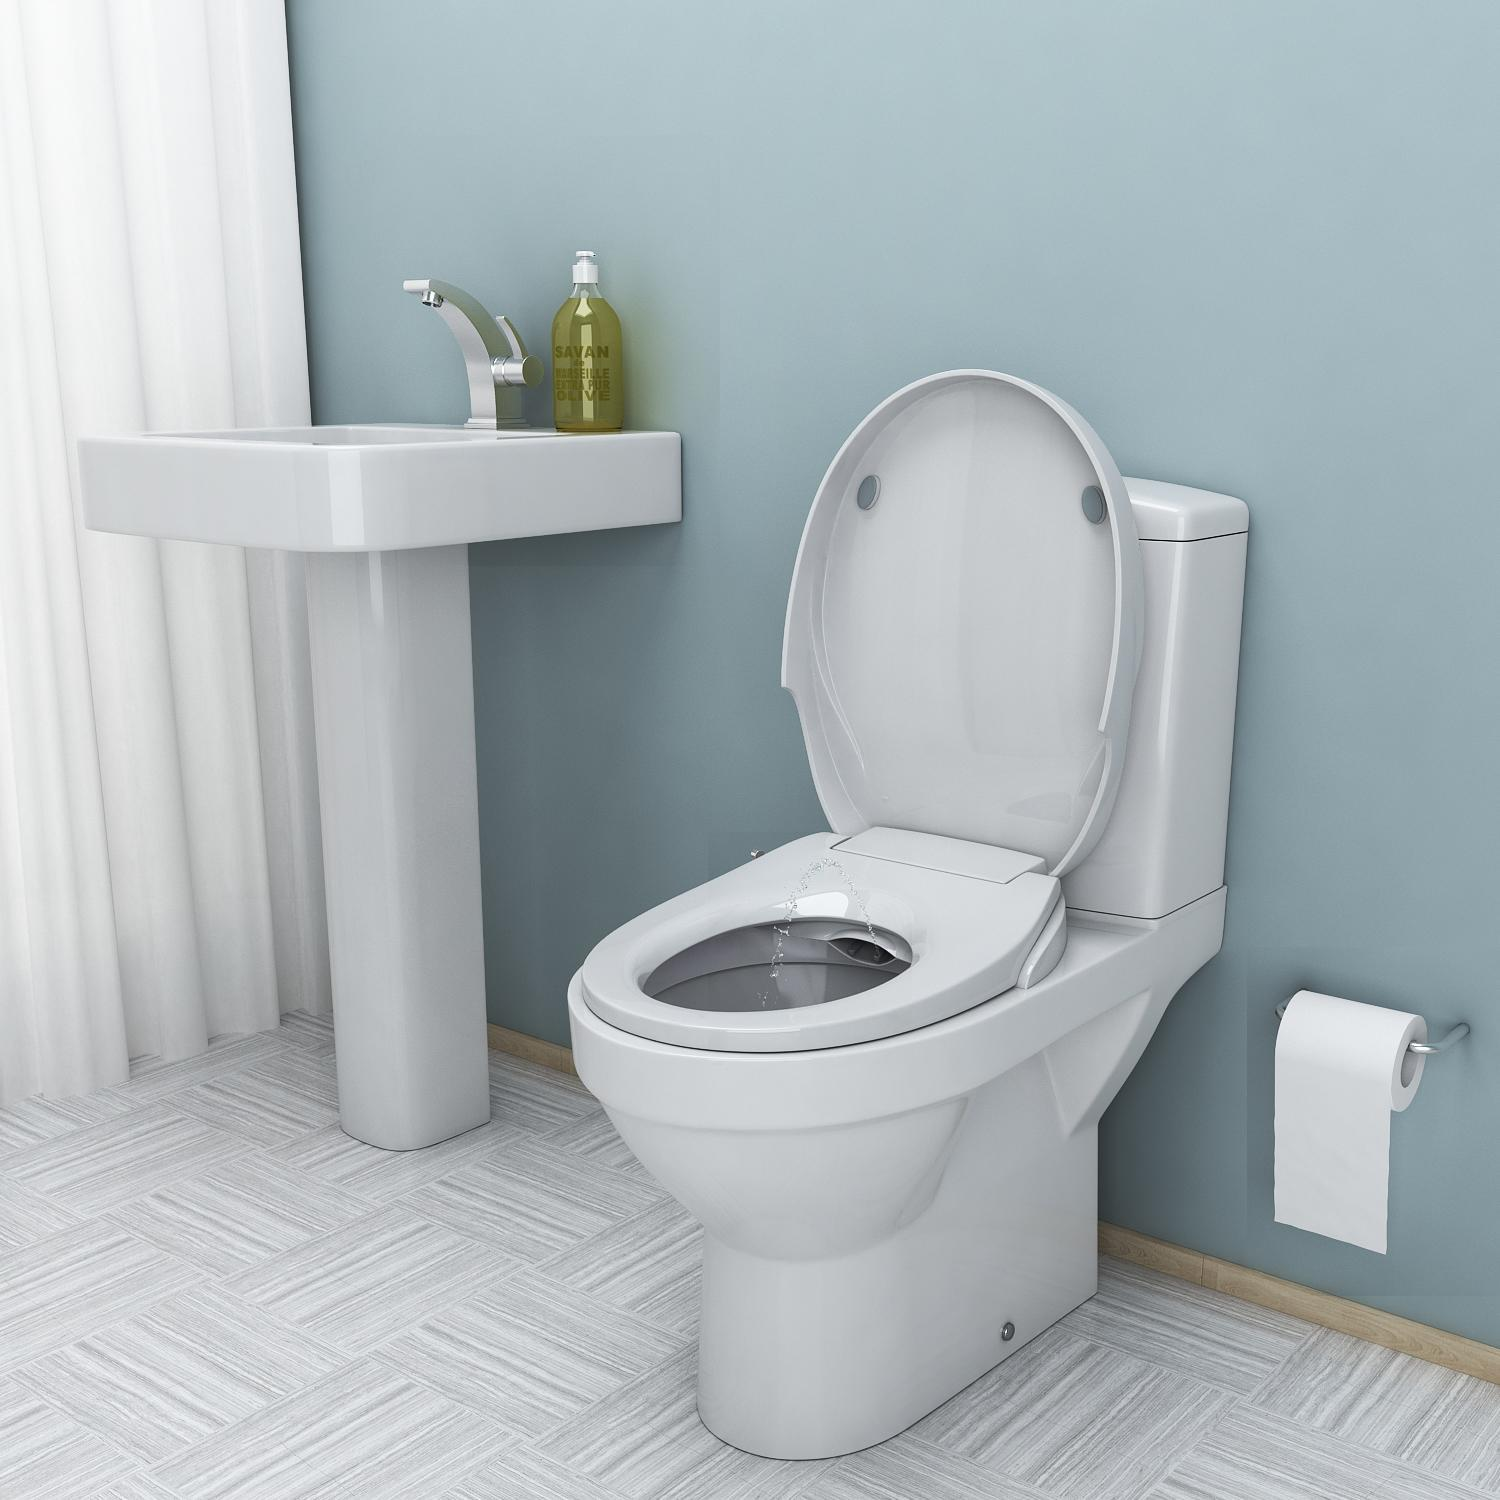 Bidet Seat Dual Self Cleaning Nozzles Elongated Non-Electric Bidet Toilet Seat Bathroom BETT